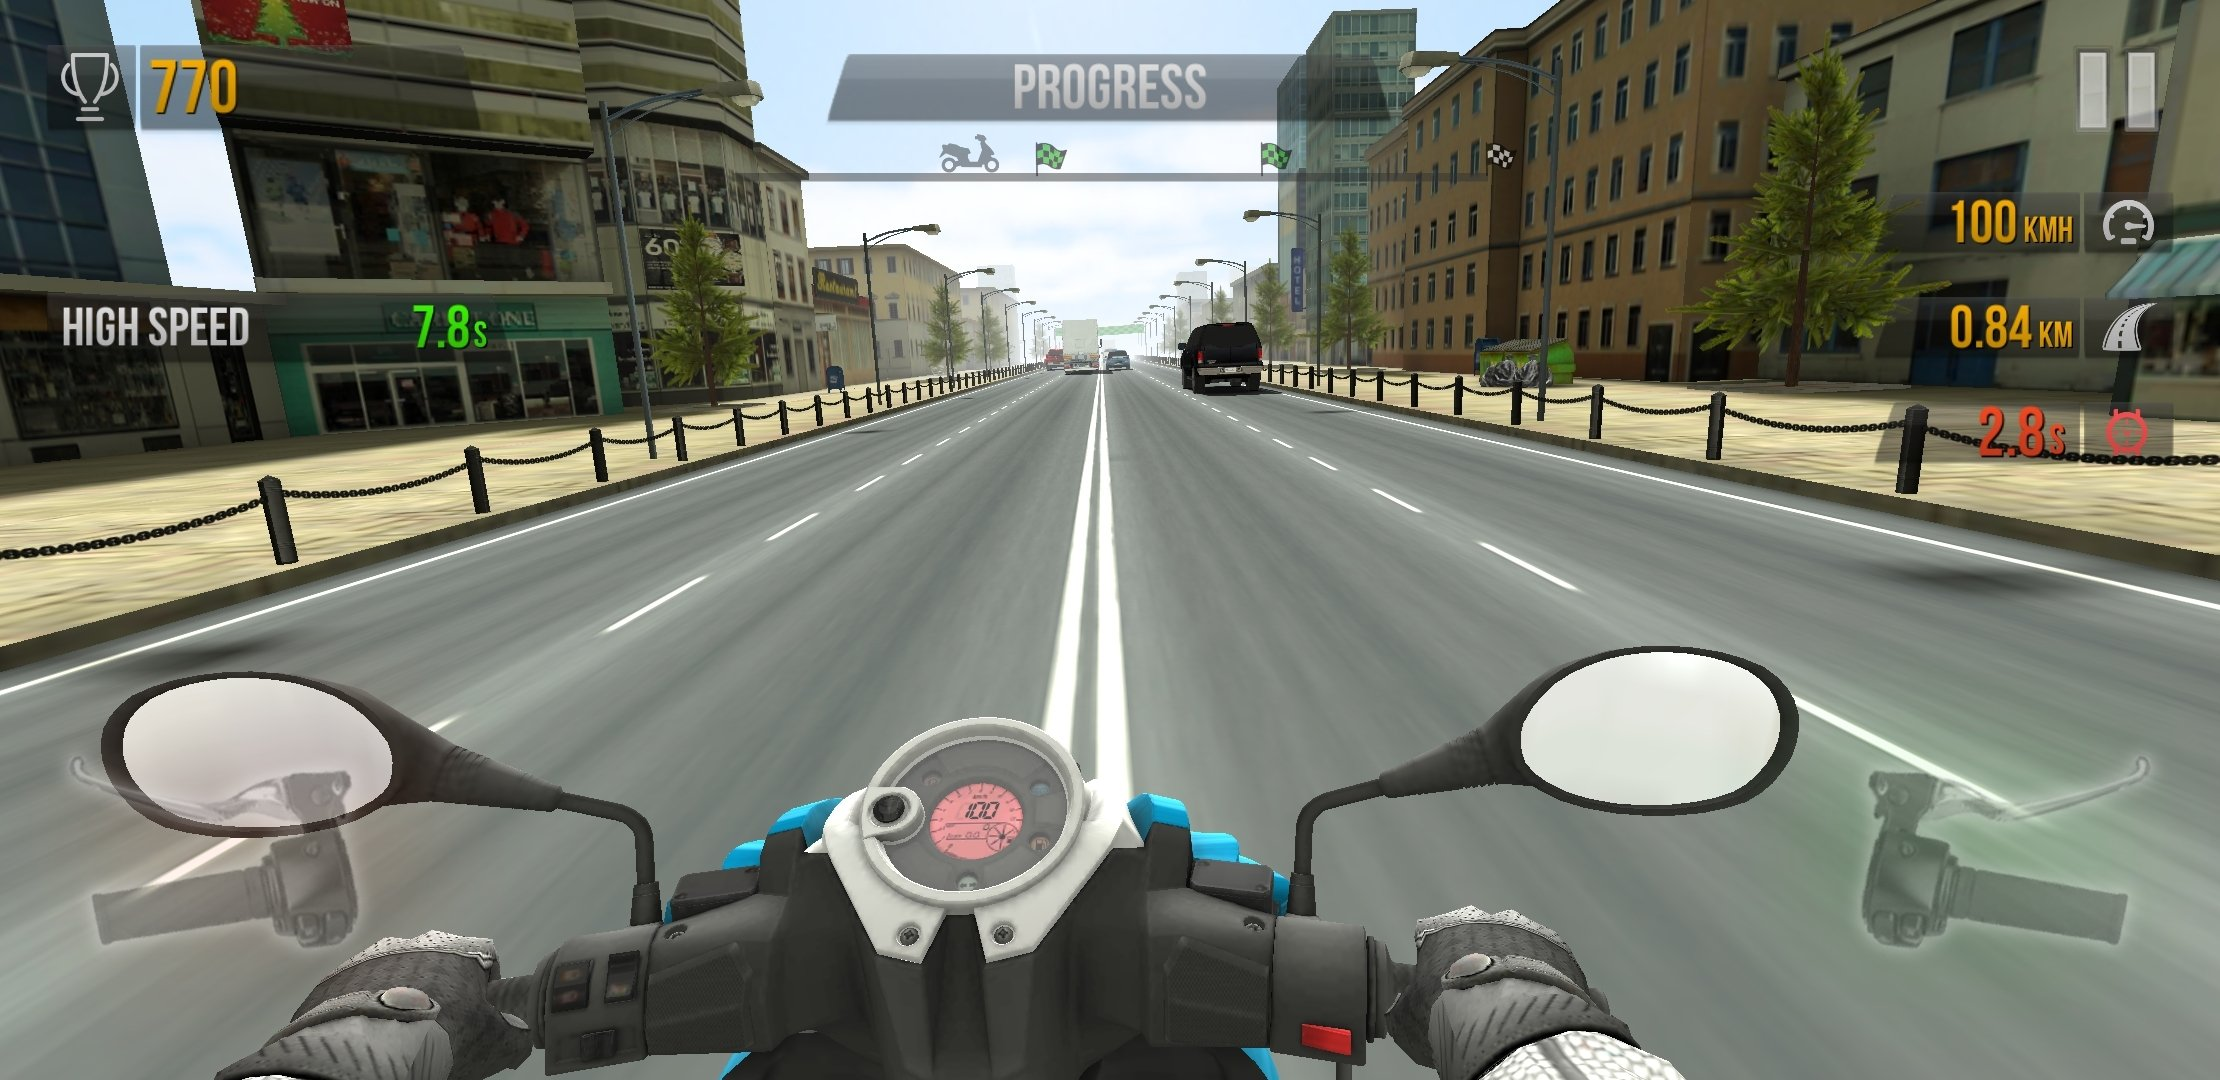 ANDROID UPTODOWN TÉLÉCHARGER TRAFFIC RACER